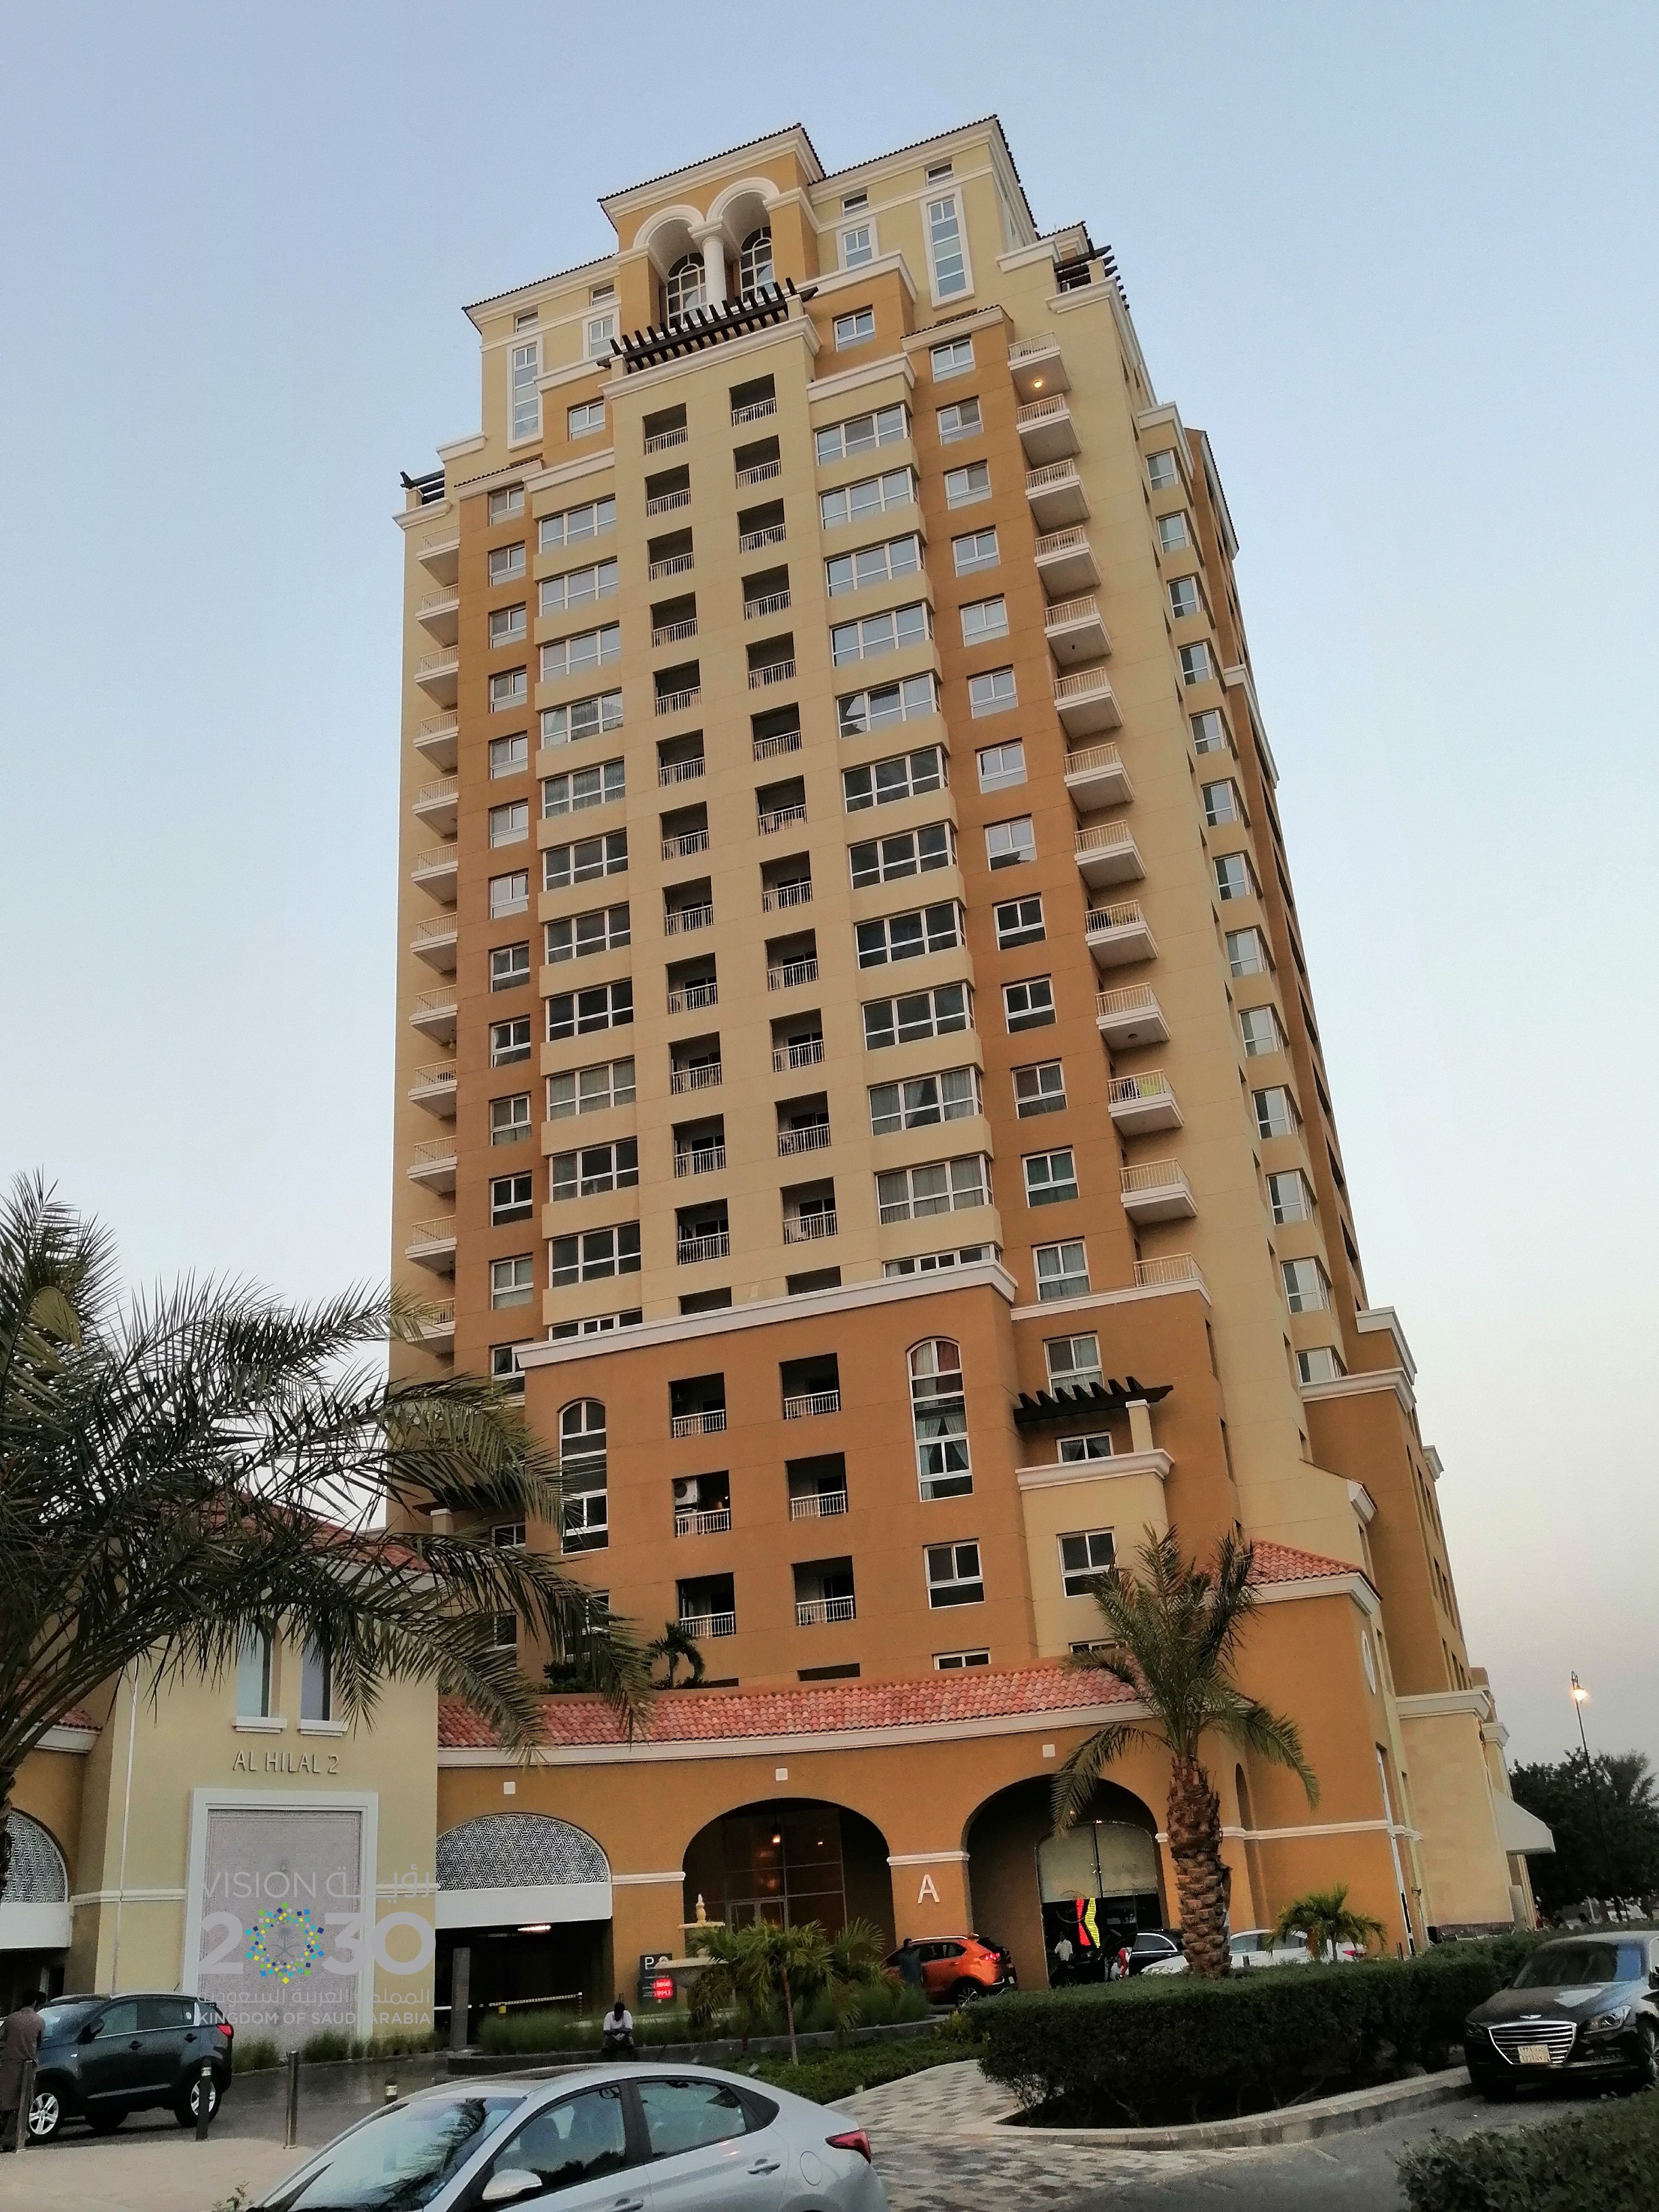 <br /> <b>Notice</b>:  Undefined variable: https://s3-ap-southeast-1.amazonaws.com/mycrm-pro-accounts-v2/property/full/1908/WGrl2xgNxKxqqQyC.jpeg in <b>/home/a2erfg/public_html/livingcompound.com/index.php</b> on line <b>813</b><br />